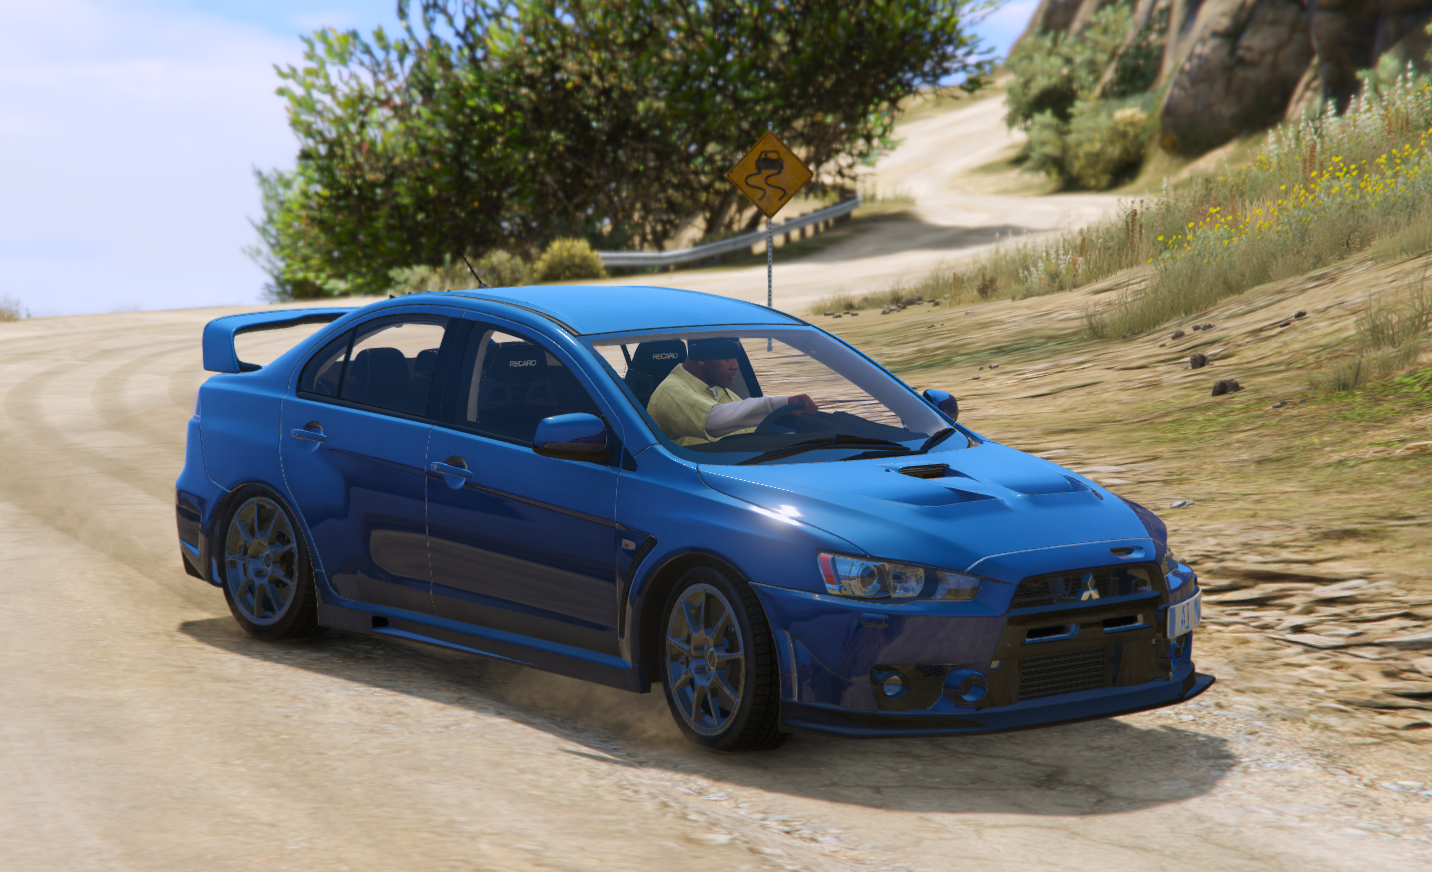 Mitsubishi Lancer Evolution X FQ 400 Add On